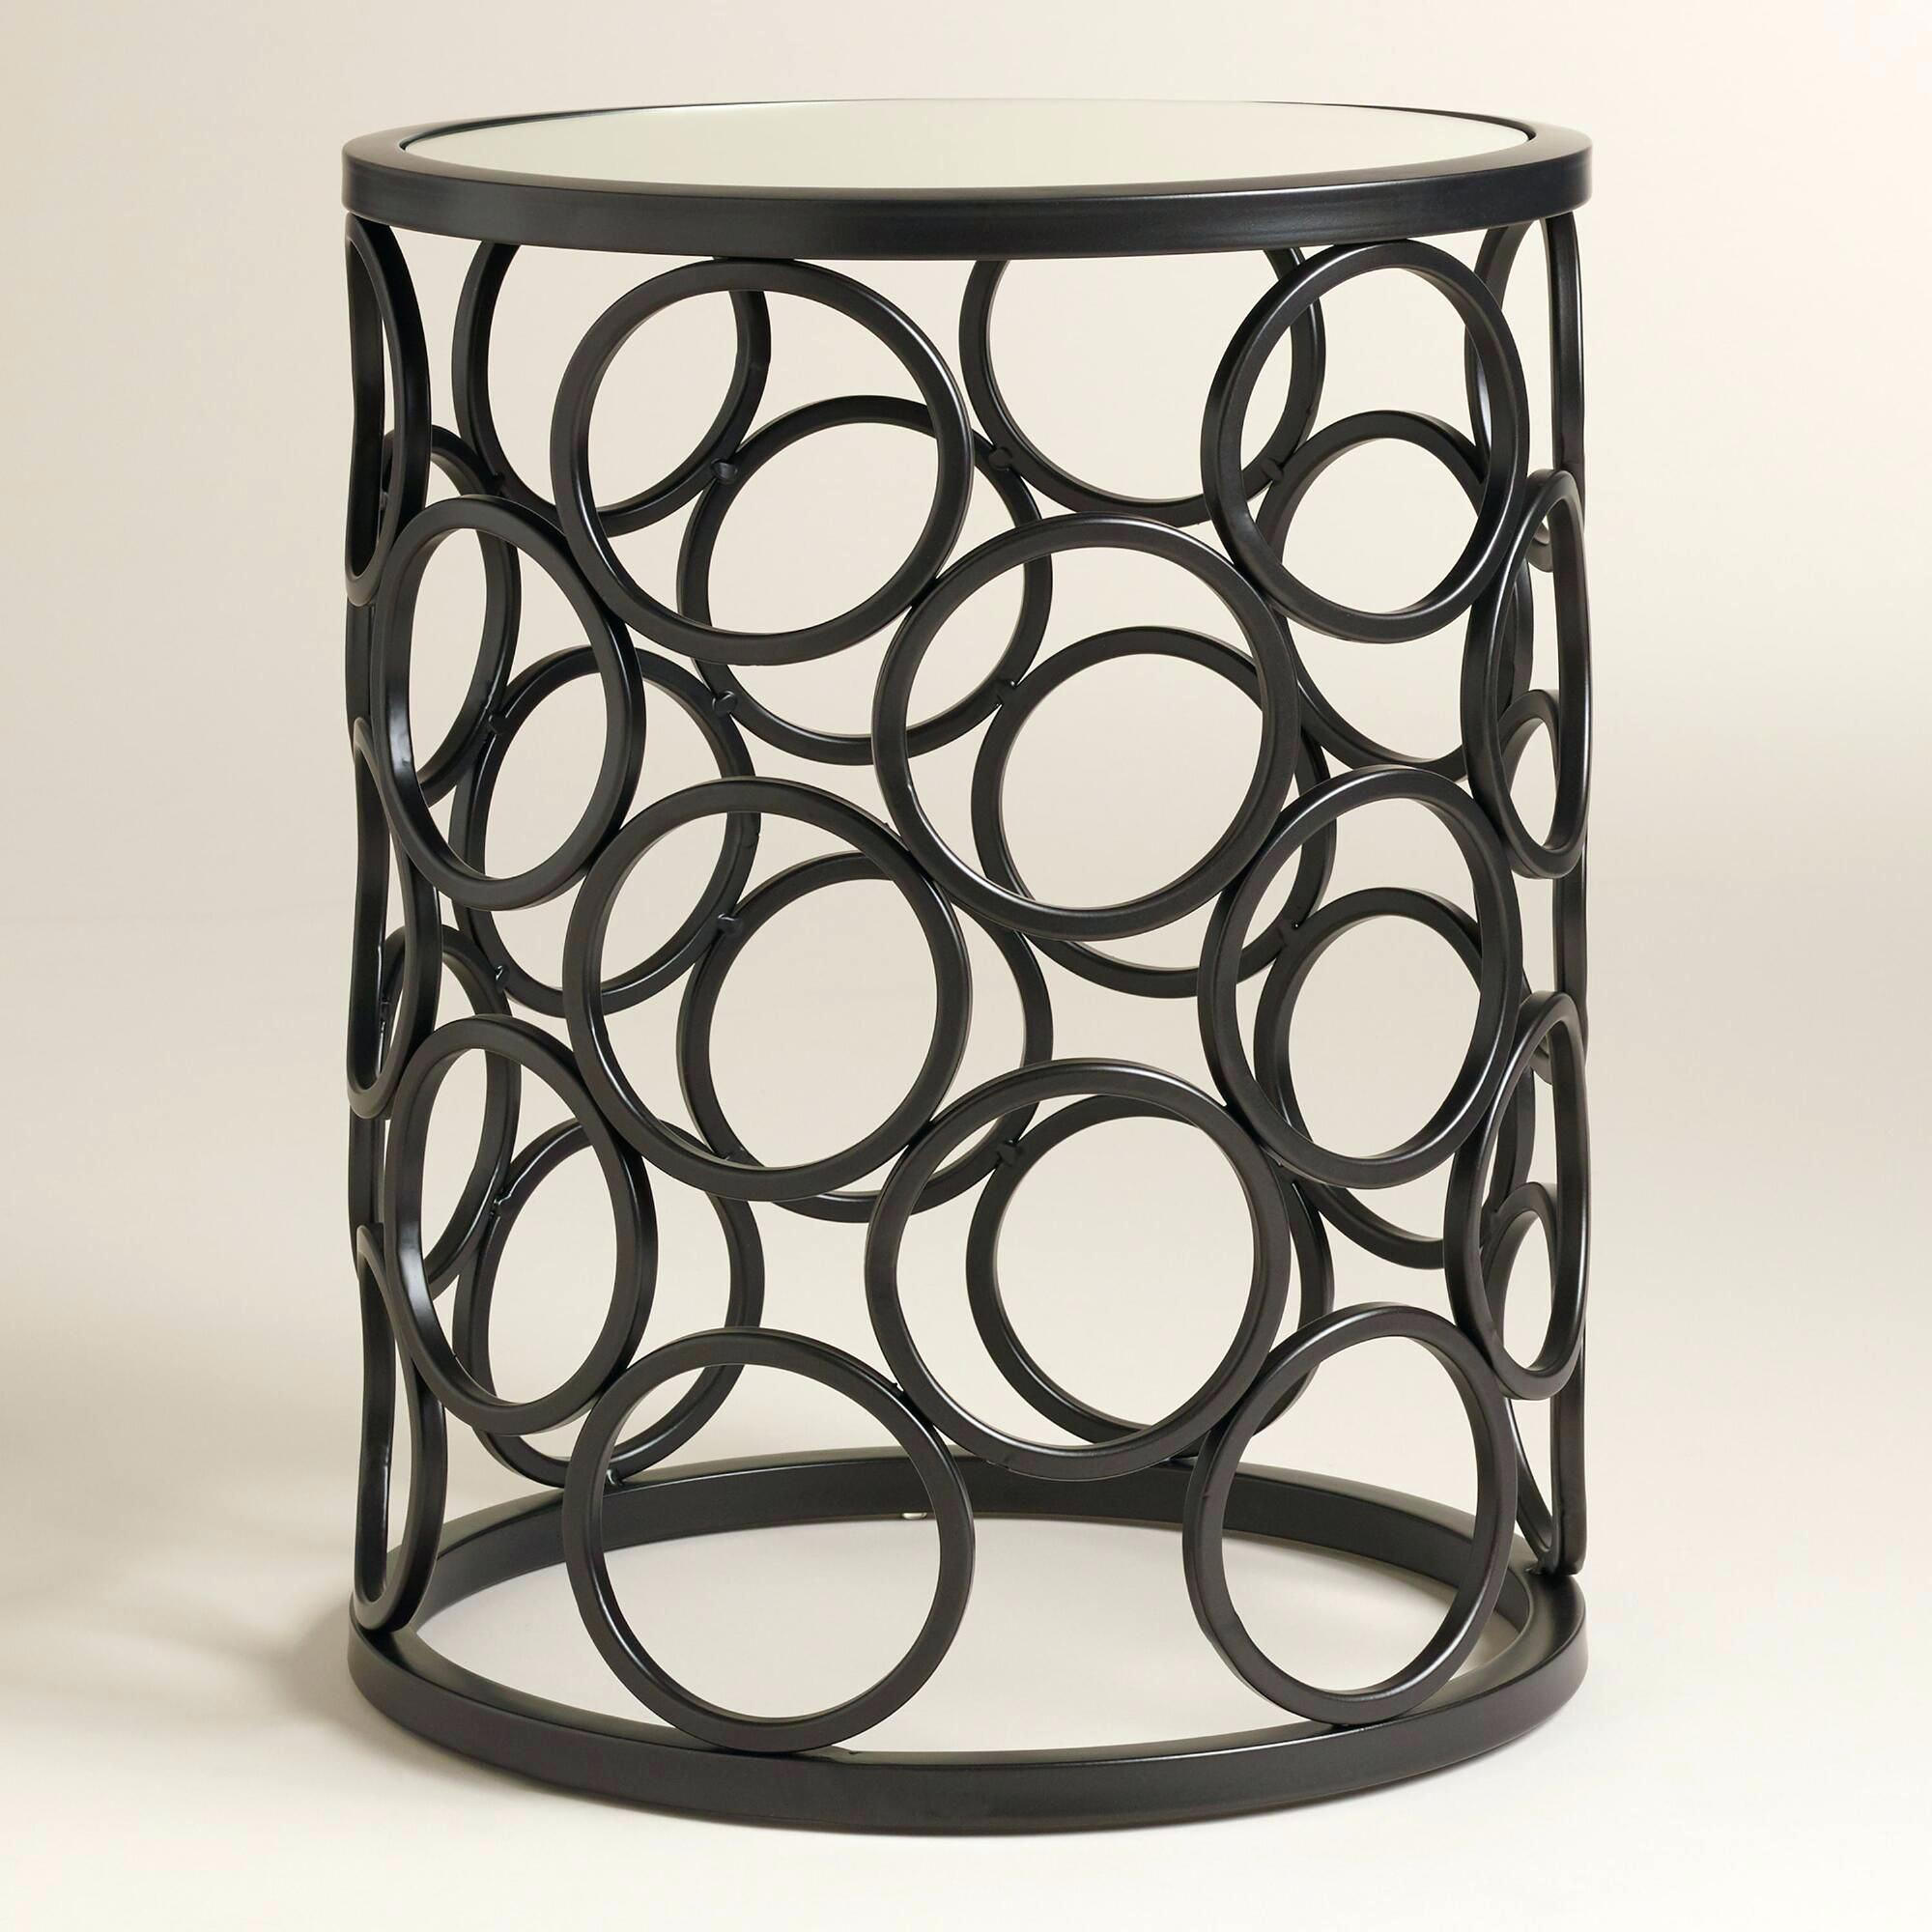 drum accent table metal rain cylinder target storage home lamps build your own end black marble top tables glass drawer pulls garden furniture sets colorful sofa teak unique patio